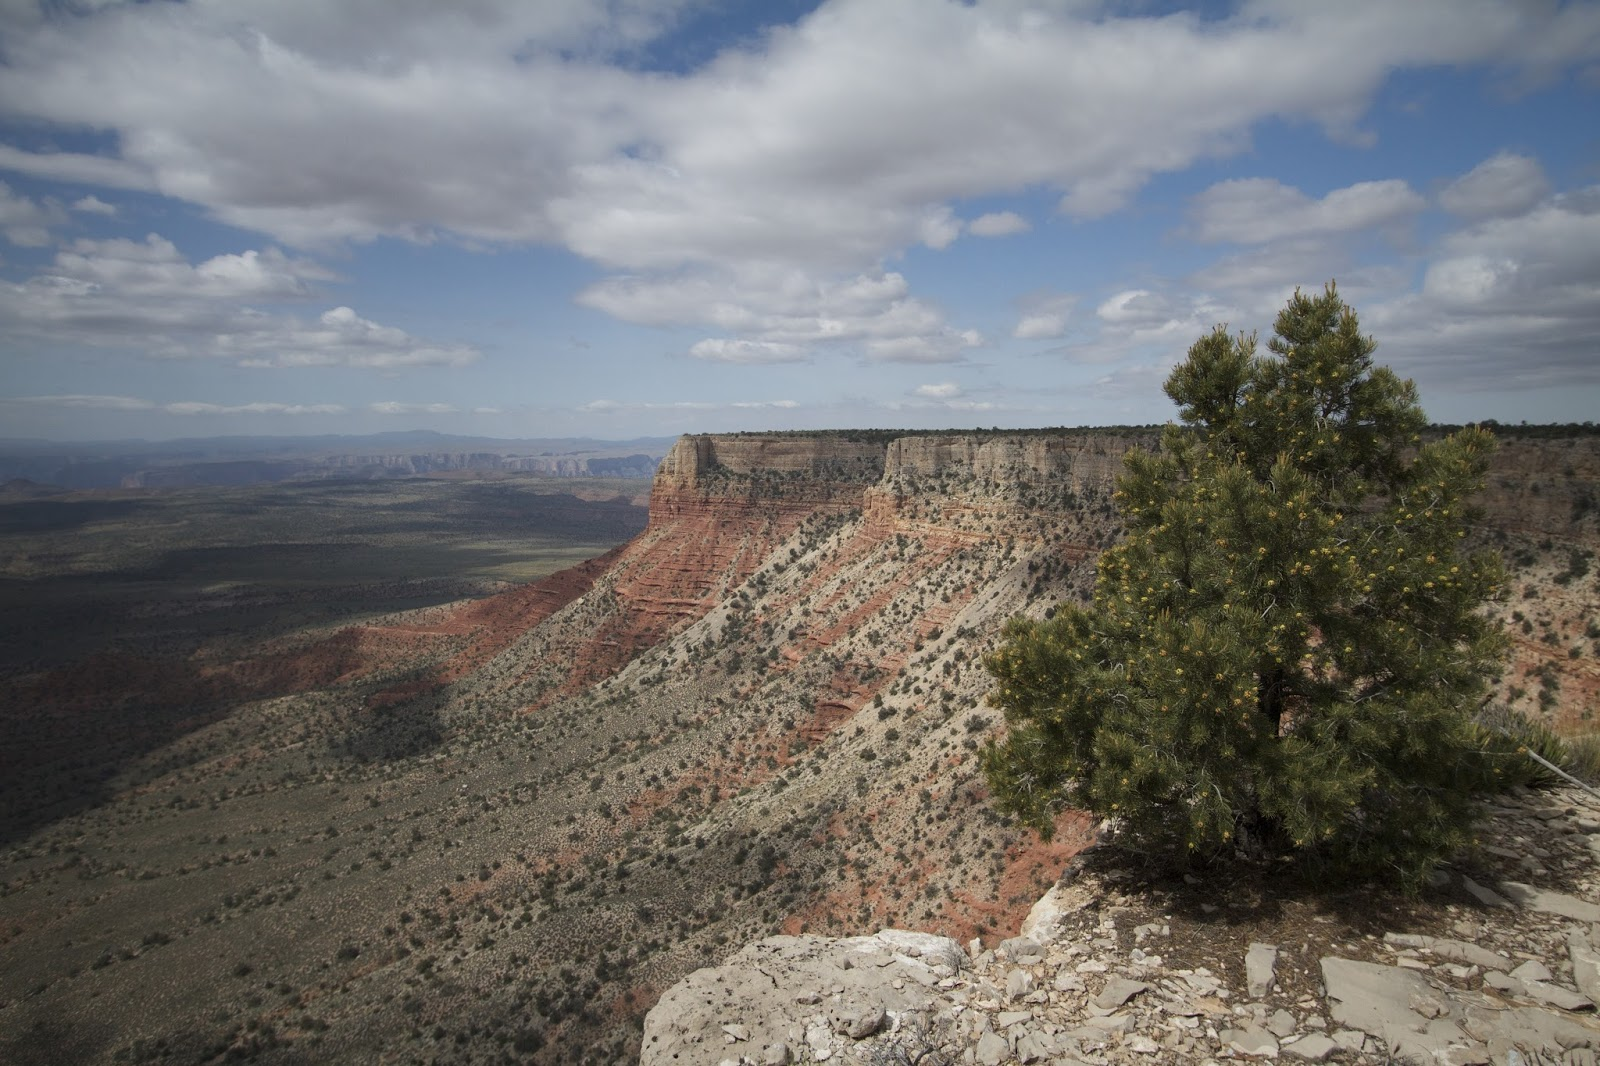 The Arizona Strip: Twin Point and the Mt. Trumbull Schoolhouse